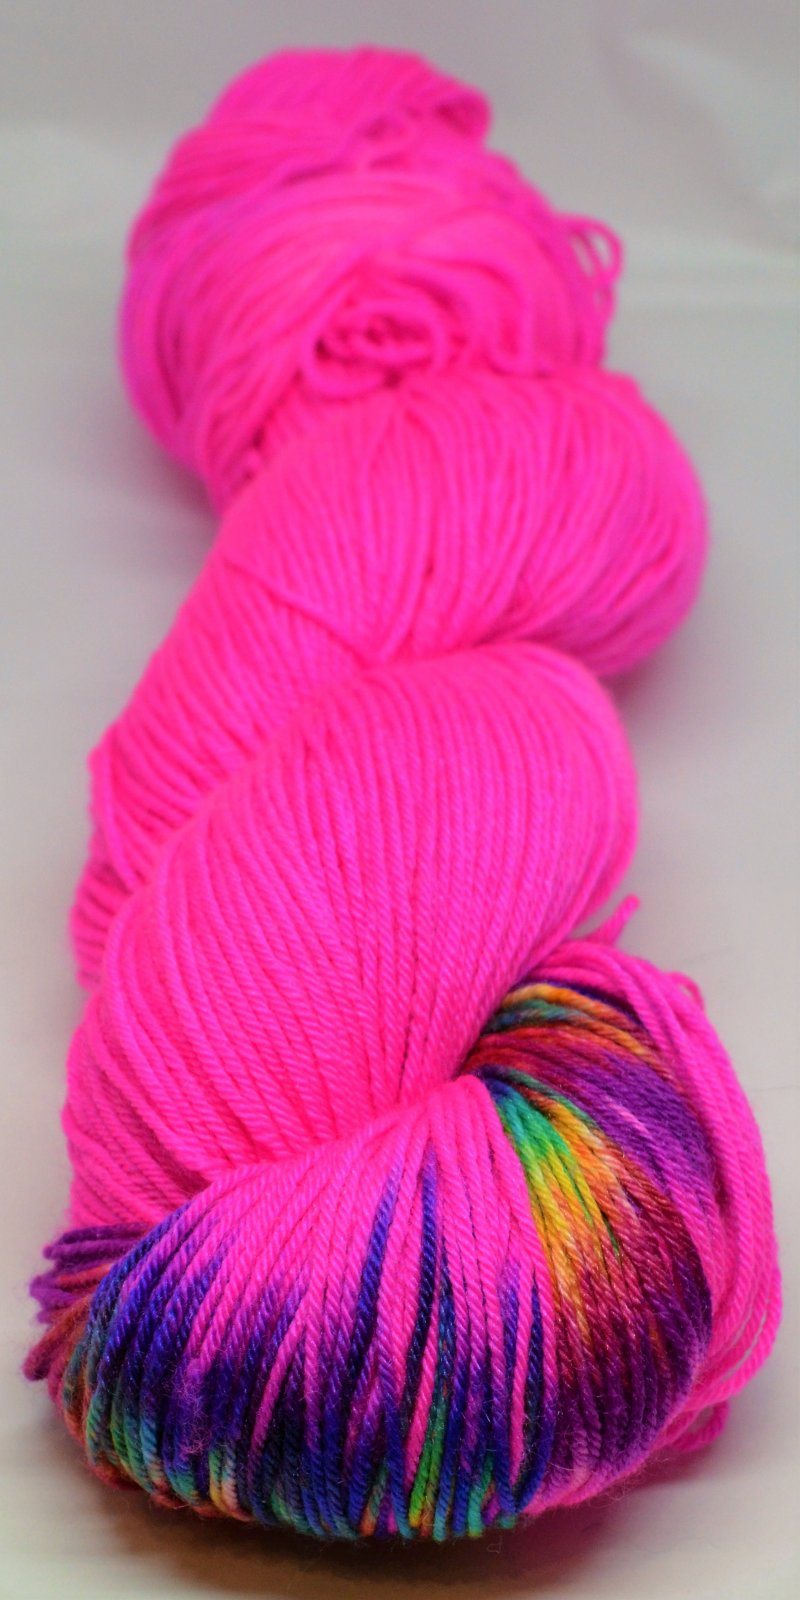 Alexandra's Breast Cancer Awareness Yarn